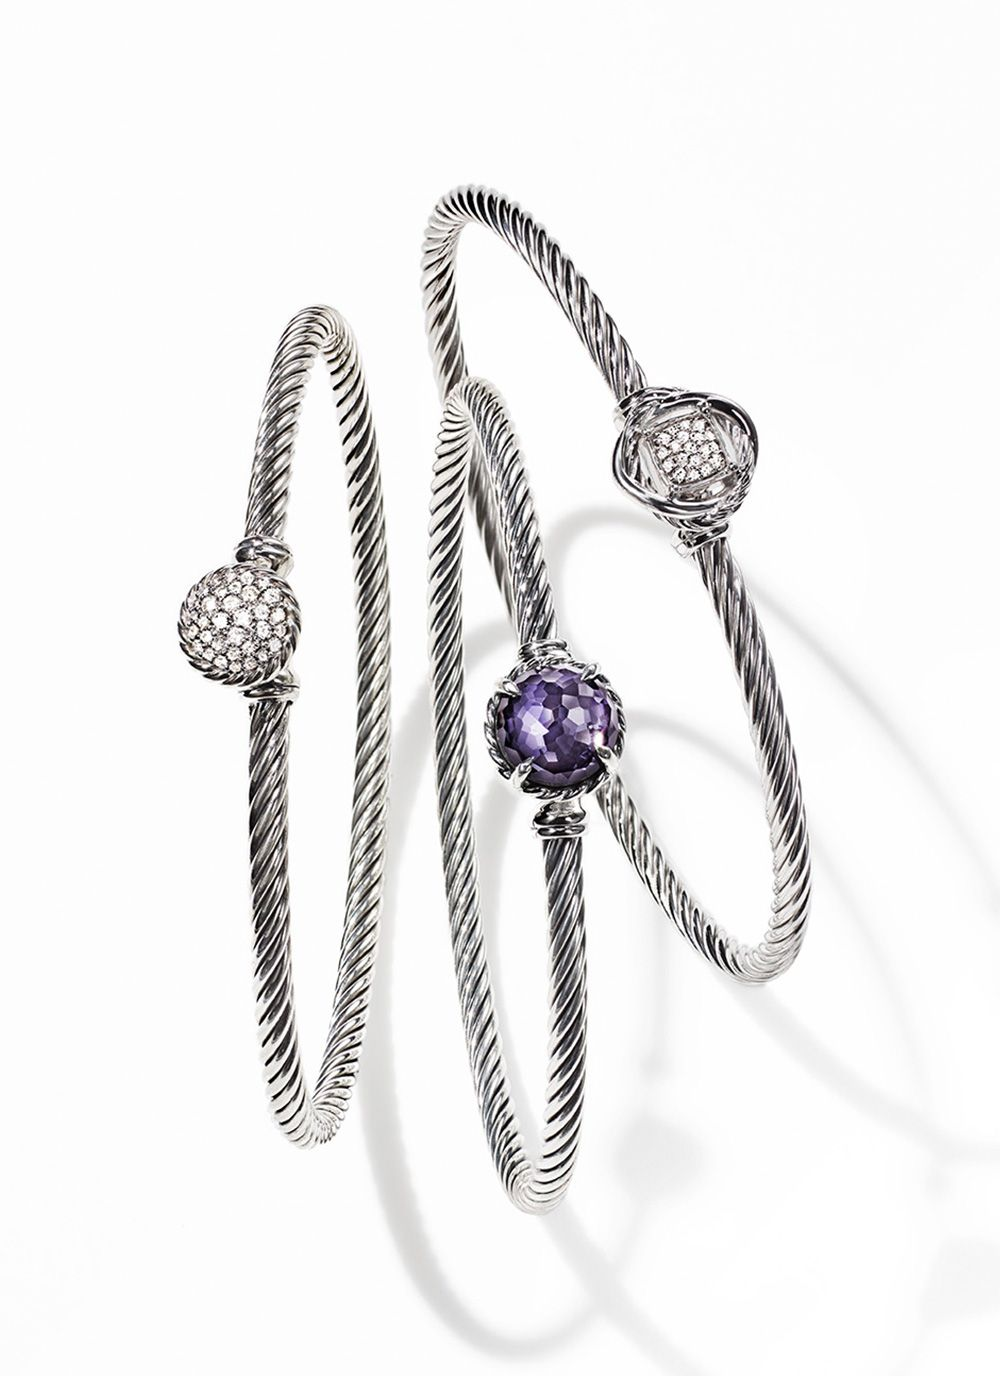 Delicate cable bracelets in sterling silver david yurman